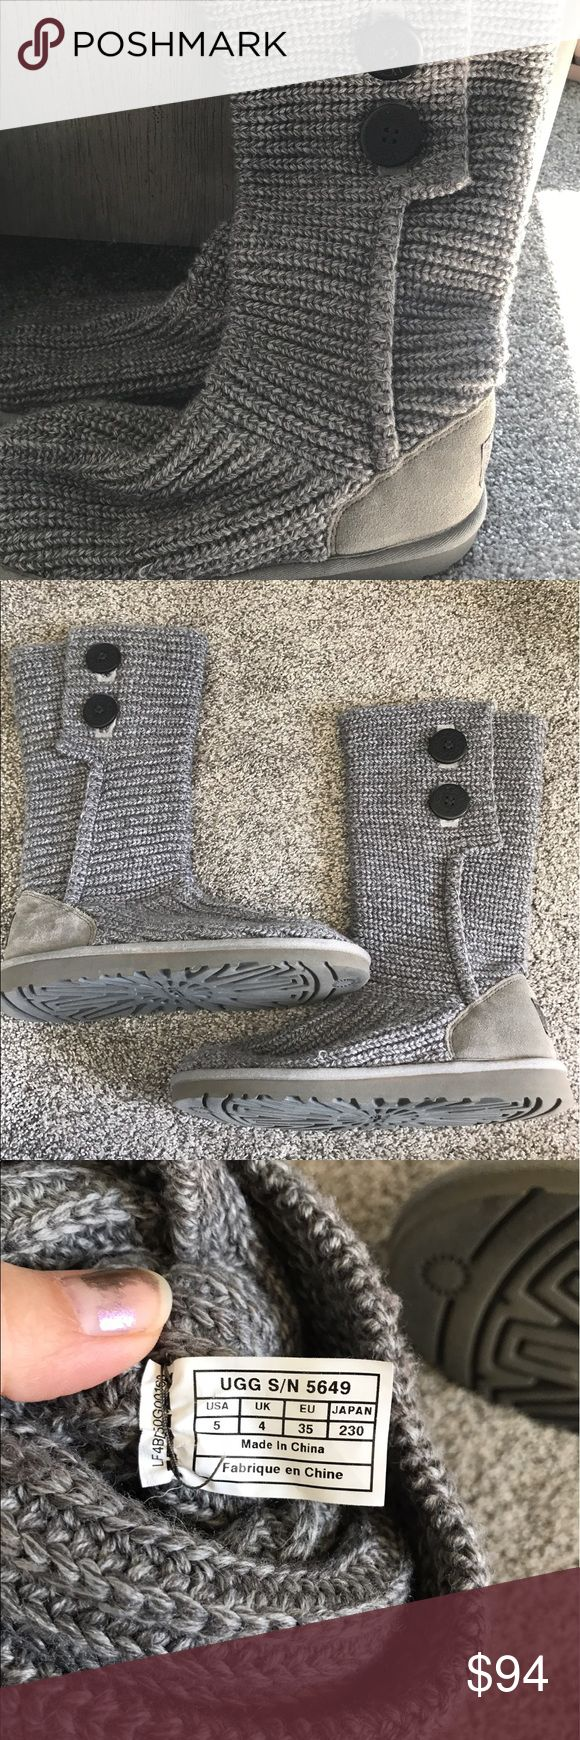 Women's Ugg Sweater button boots sz 5 Women's Ugg Swearter button boots size 5 super cute! Worn only once or twice! Excellent like new condition! Fits a 7.5 to 8 in women's! Color is grey! 100% authentic! No flaws! Smoke free home! UGG Shoes Winter & Rain Boots